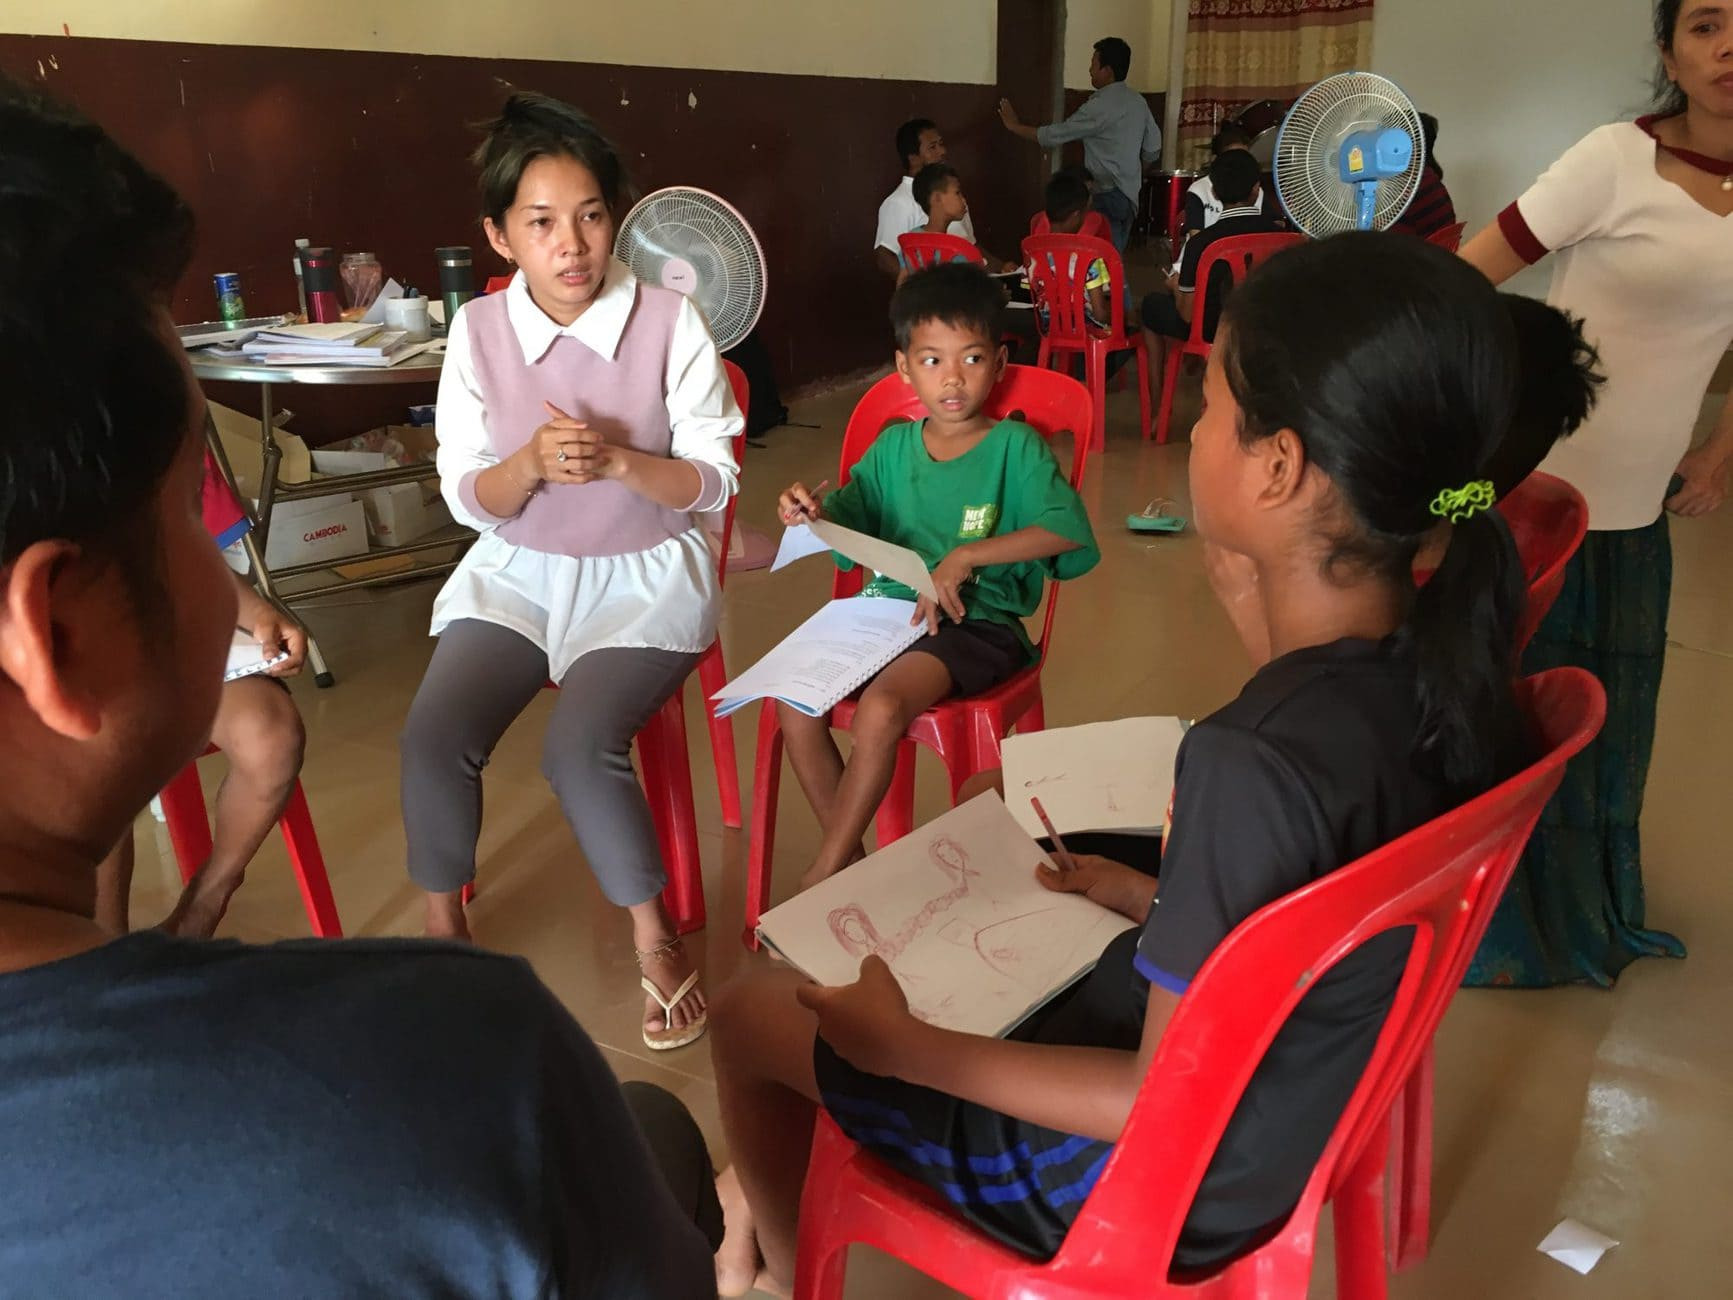 House parents worked with children after 40 hours of training.